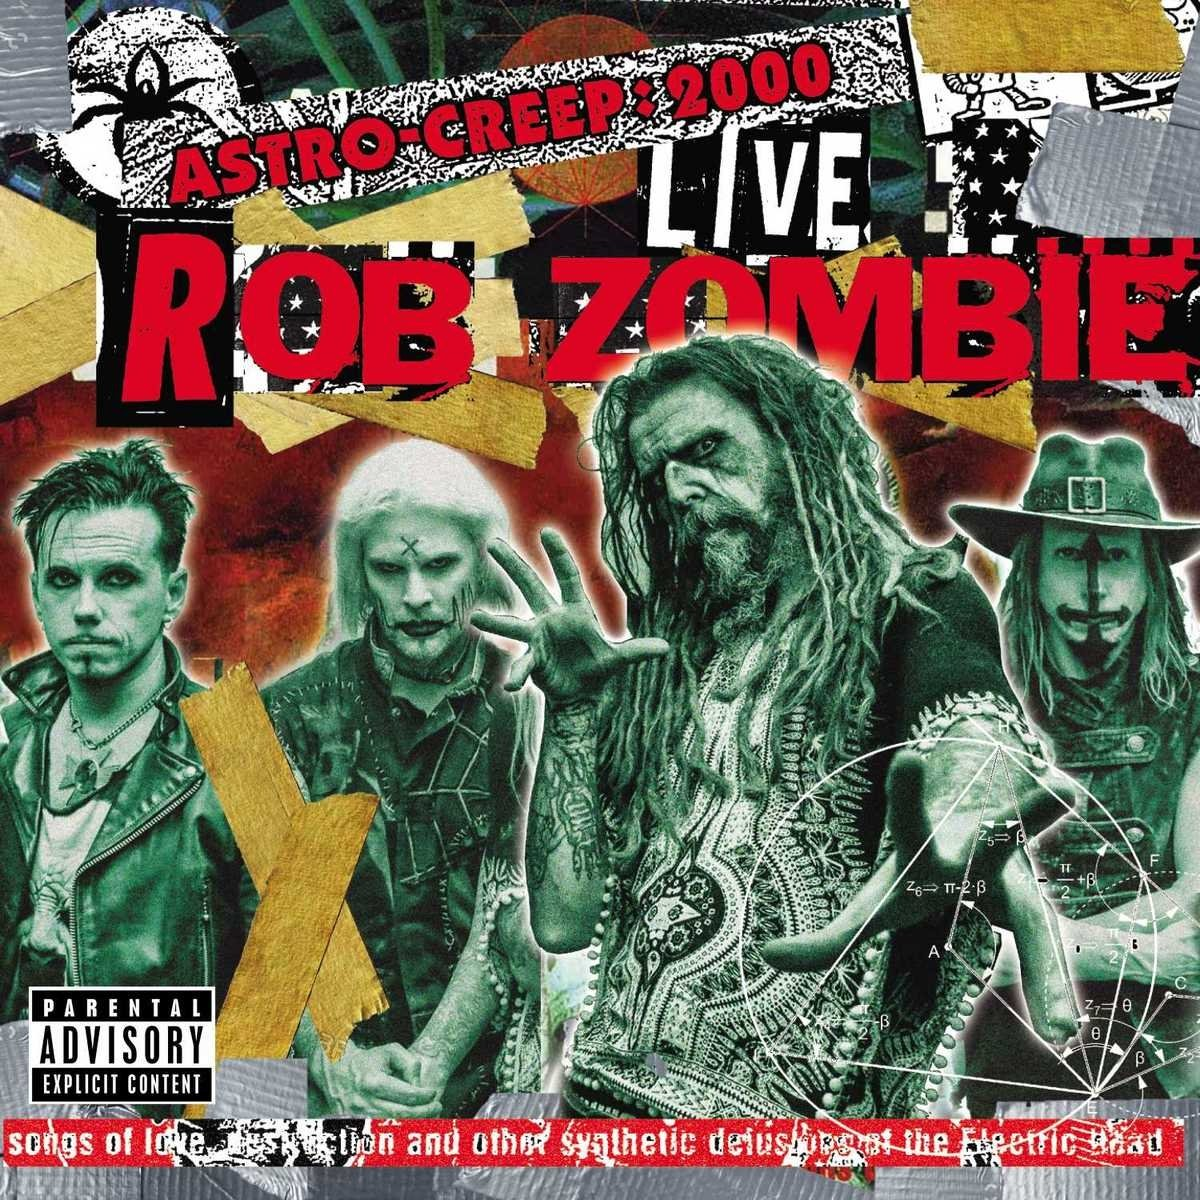 CD : Rob Zombie - Astro-Creep: 2000 Live Songs Of Love, Destruction And Other Synthetic